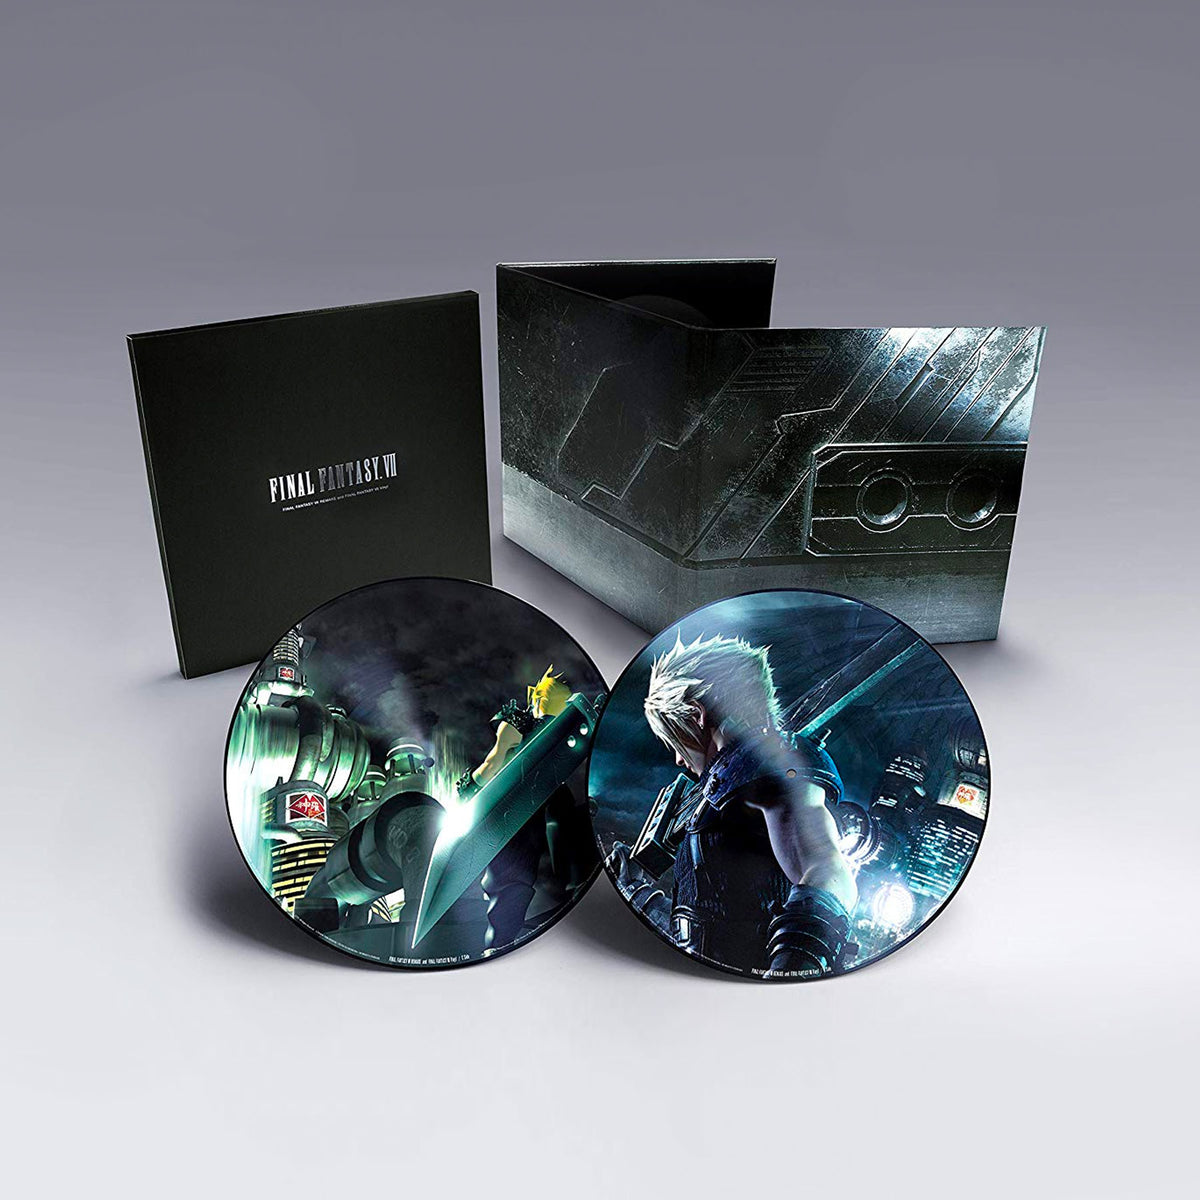 Nobuo Uematsu: Final Fantasy VII Soundtrack (180g, Pic Disc) Vinyl 2LP - PRE-ORDER